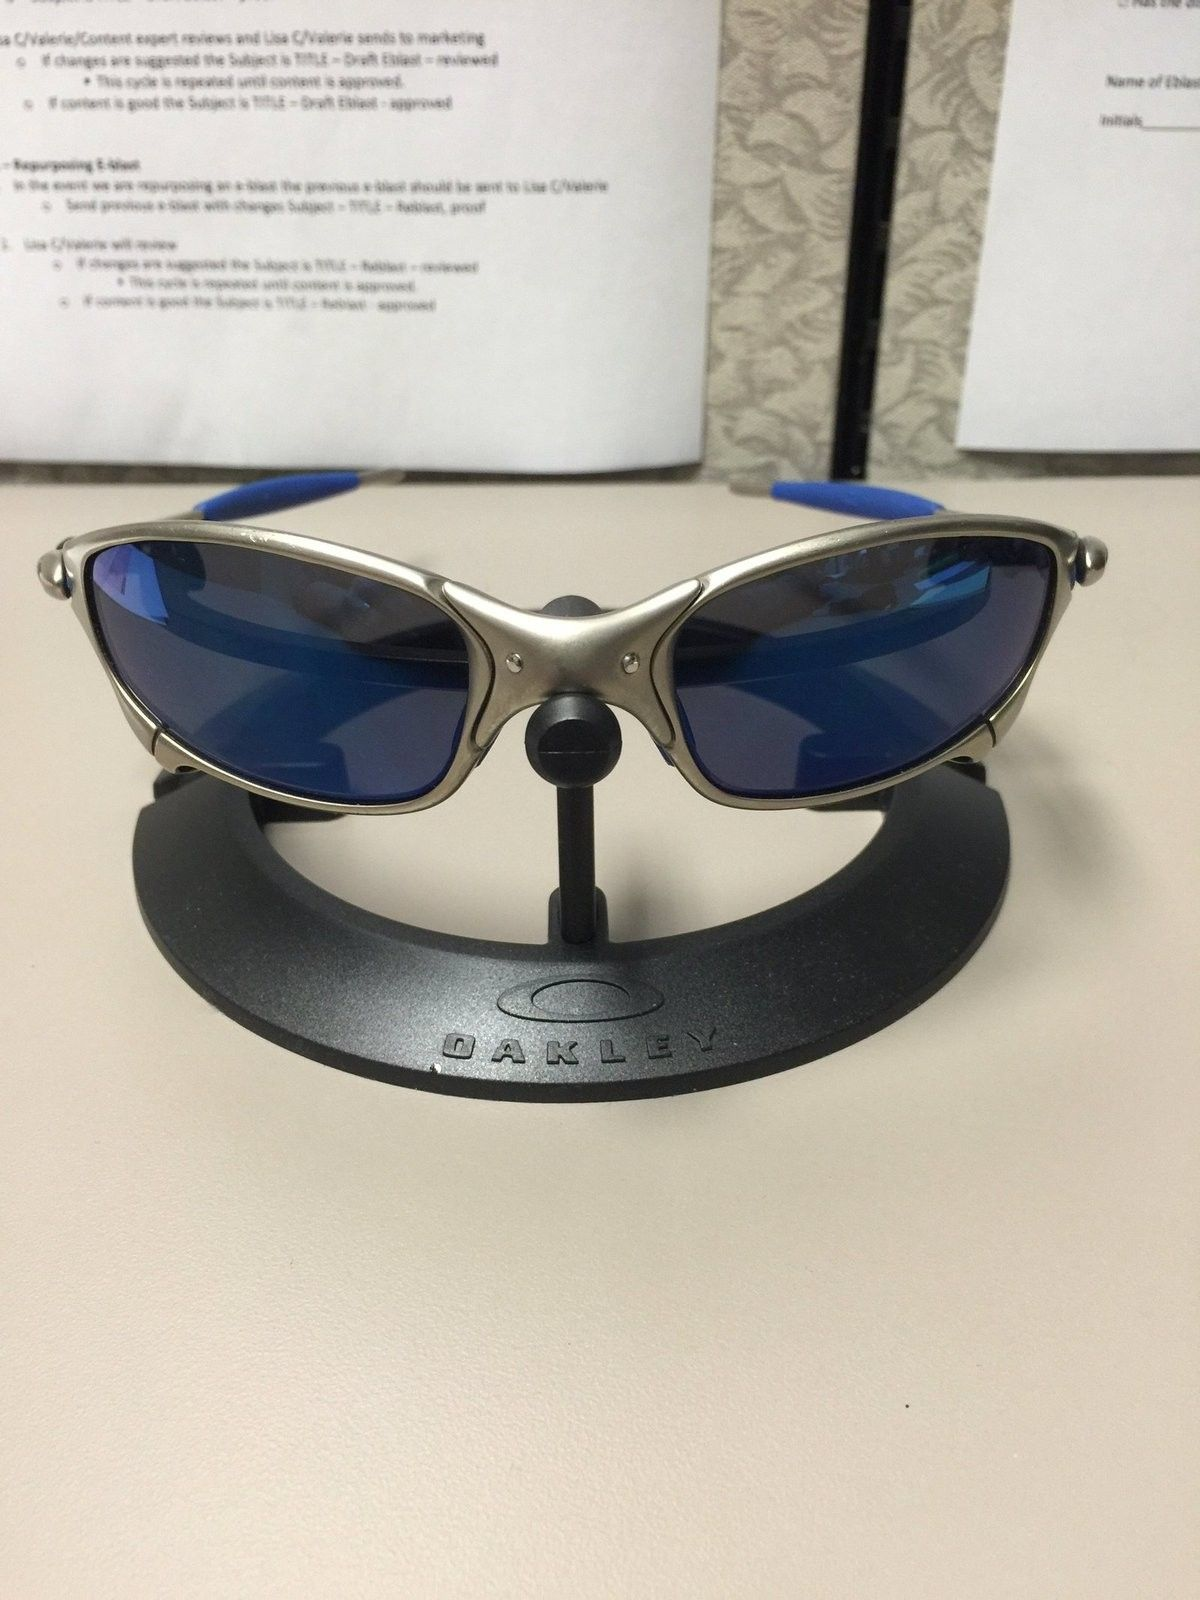 WTT Plasma Juliet w/Gray lenses and new rubbers for Polished Juliet frame only - image.jpg